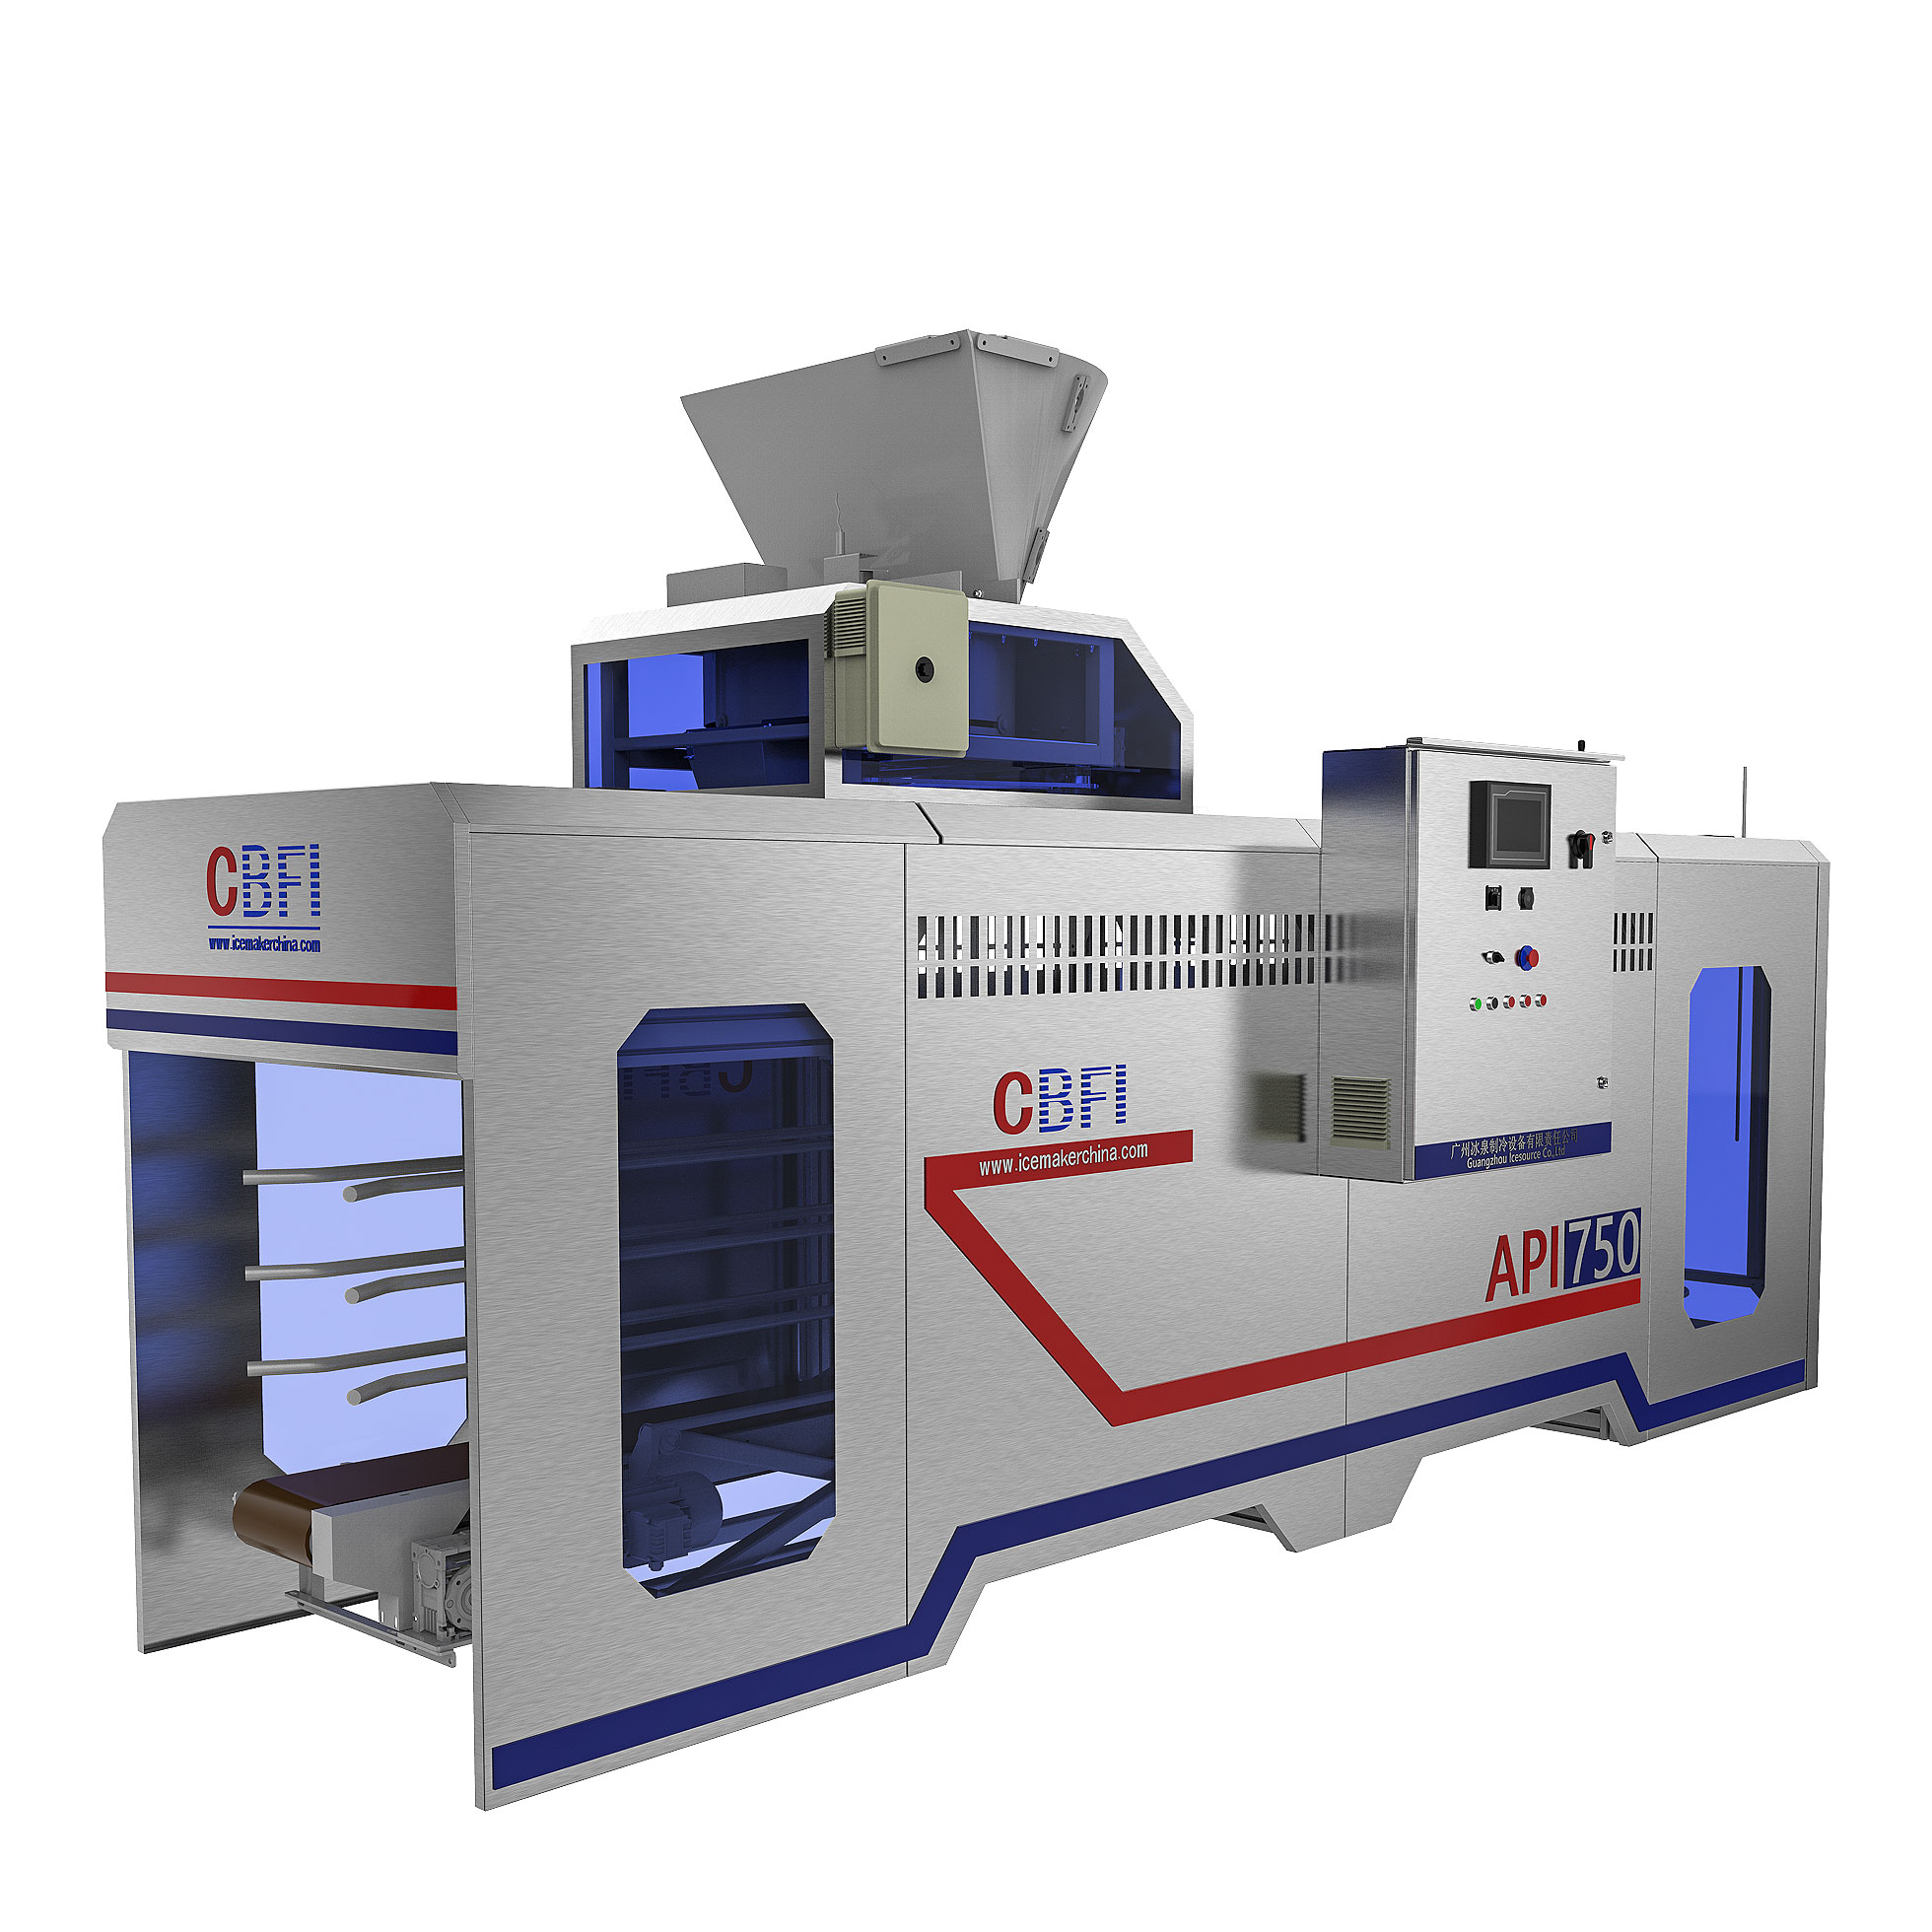 CBFI-Industrial Ice Cube Making Machine Cbfi Cv10000 10 Tons Per Day-7